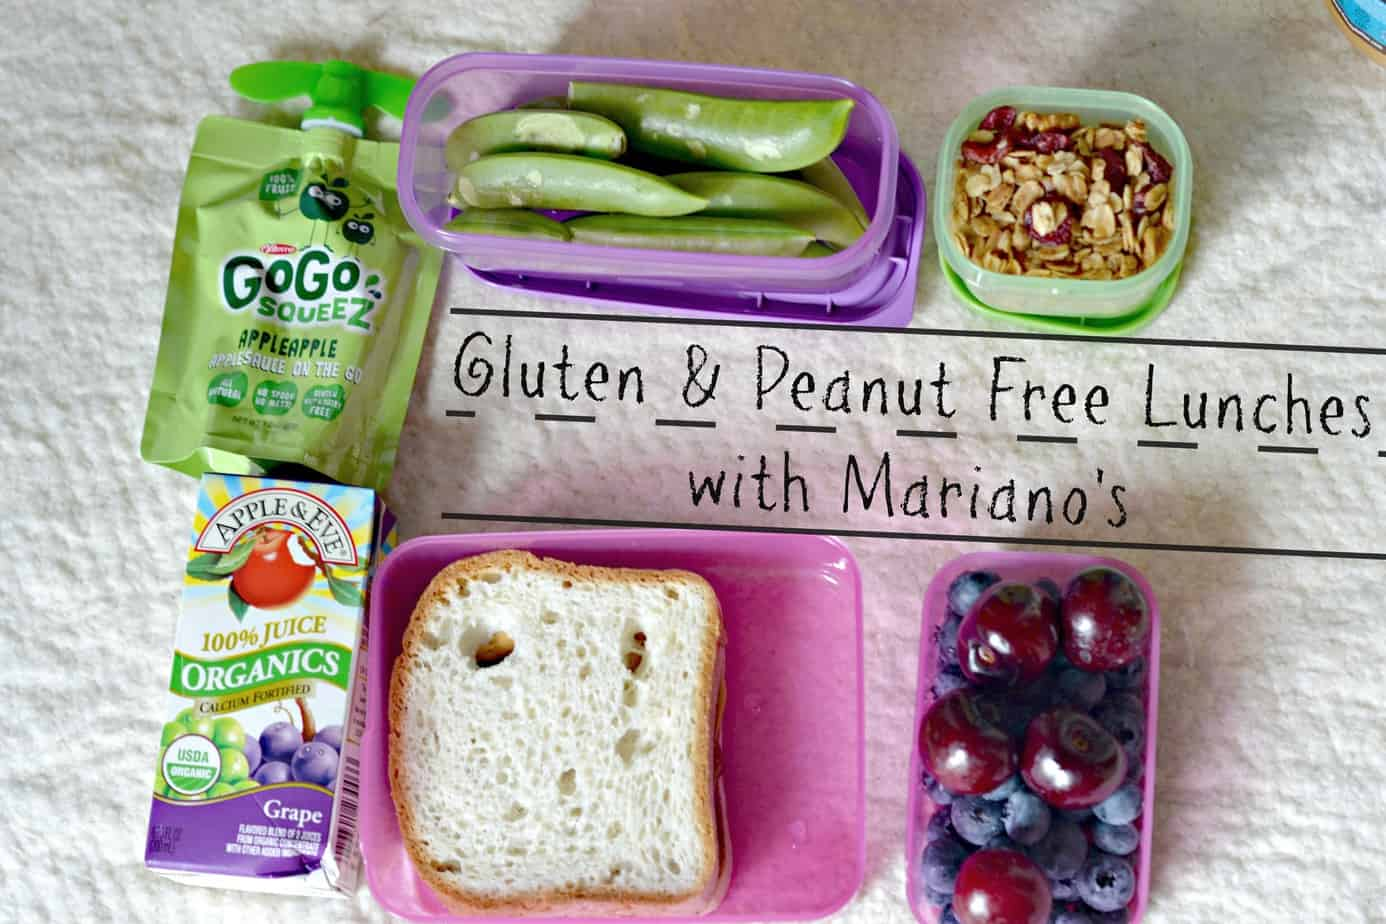 Gluten and Peanut Free Lunches #mymarianos #shop